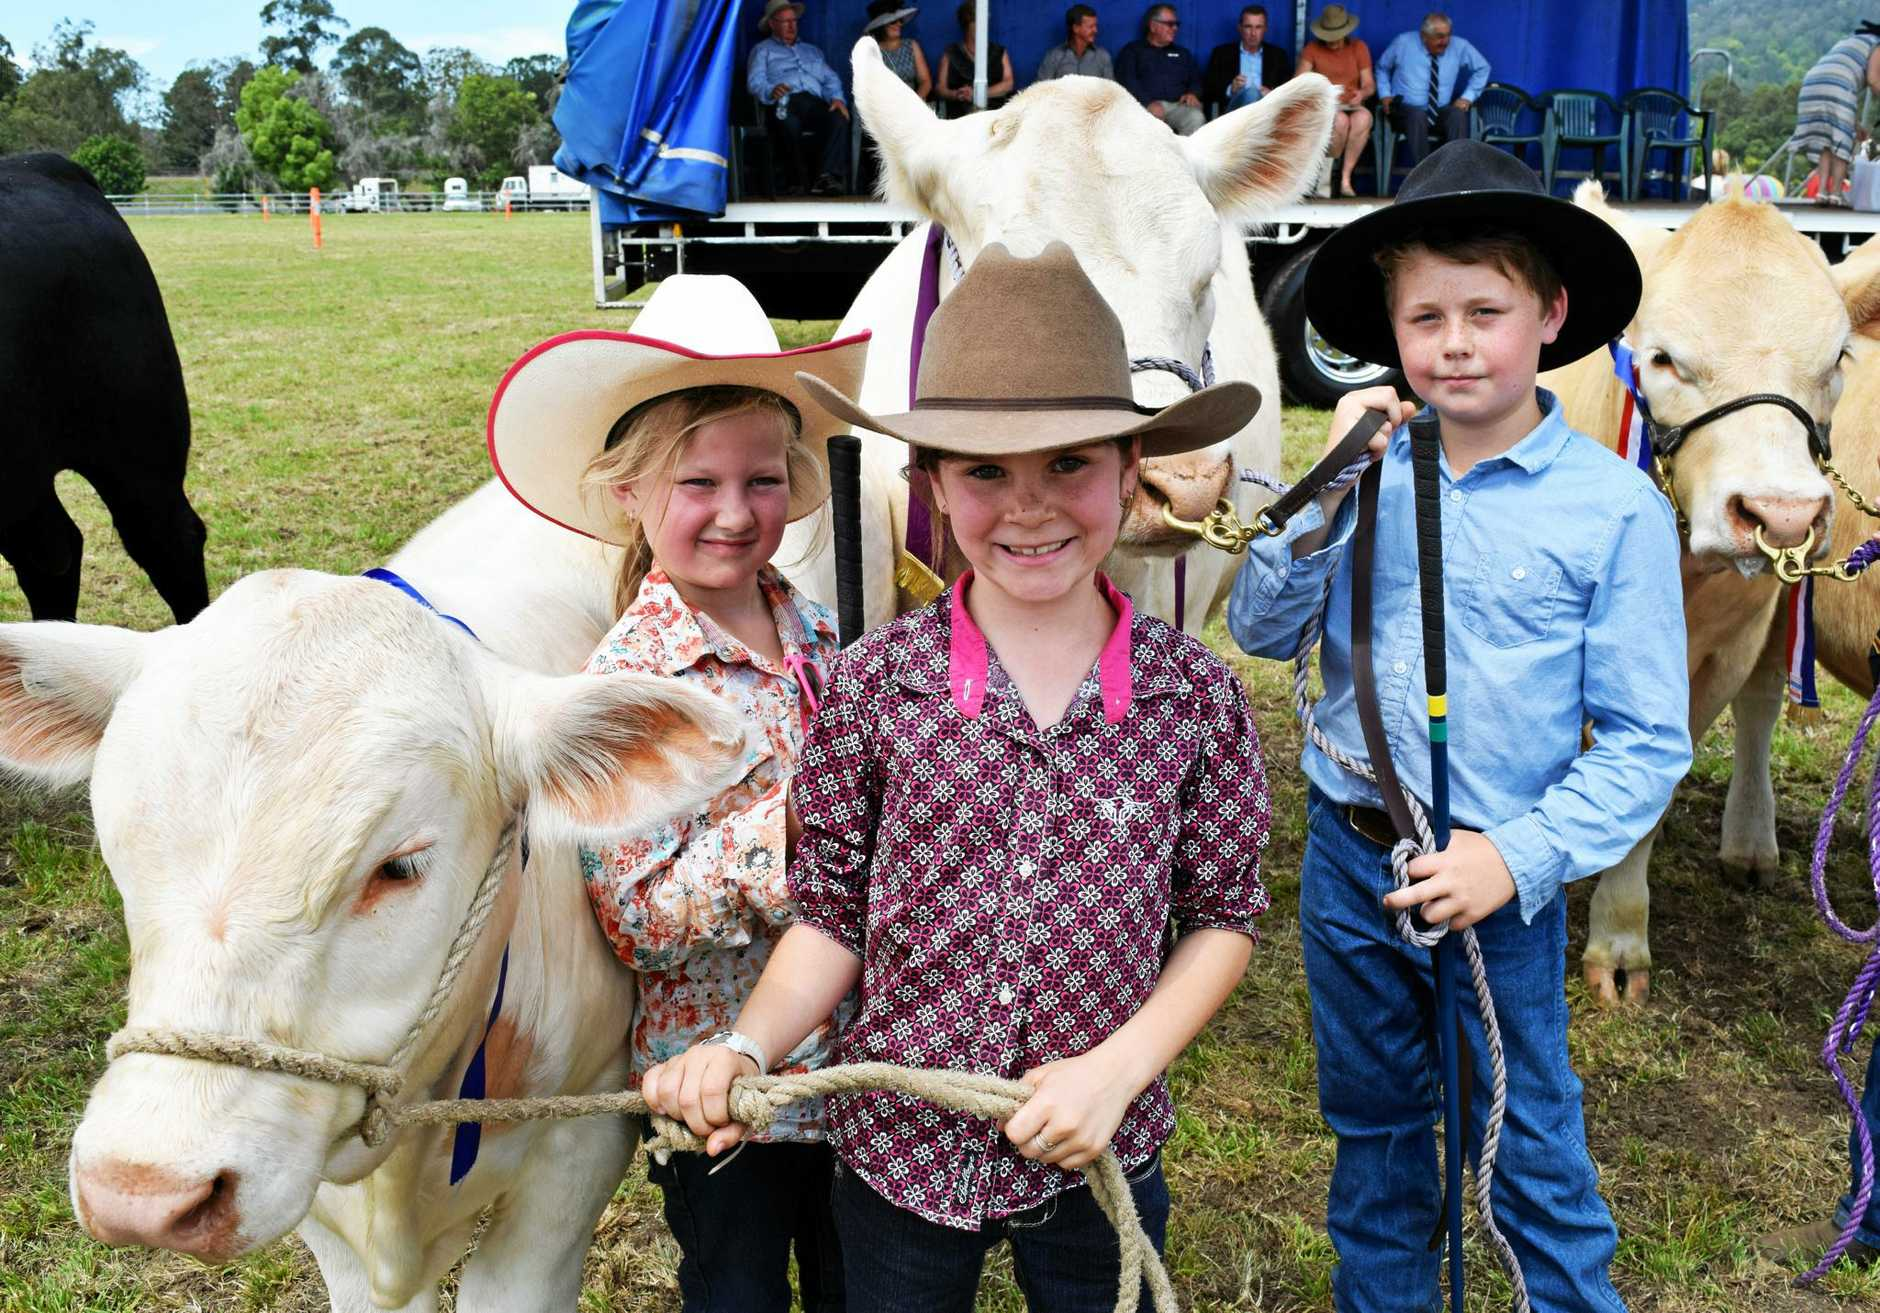 (left to right): Kate Disson, 8; Georgia Mulcahy, 8 and Bradley Disson, 10 with their champion cattle at the Kyogle Show.